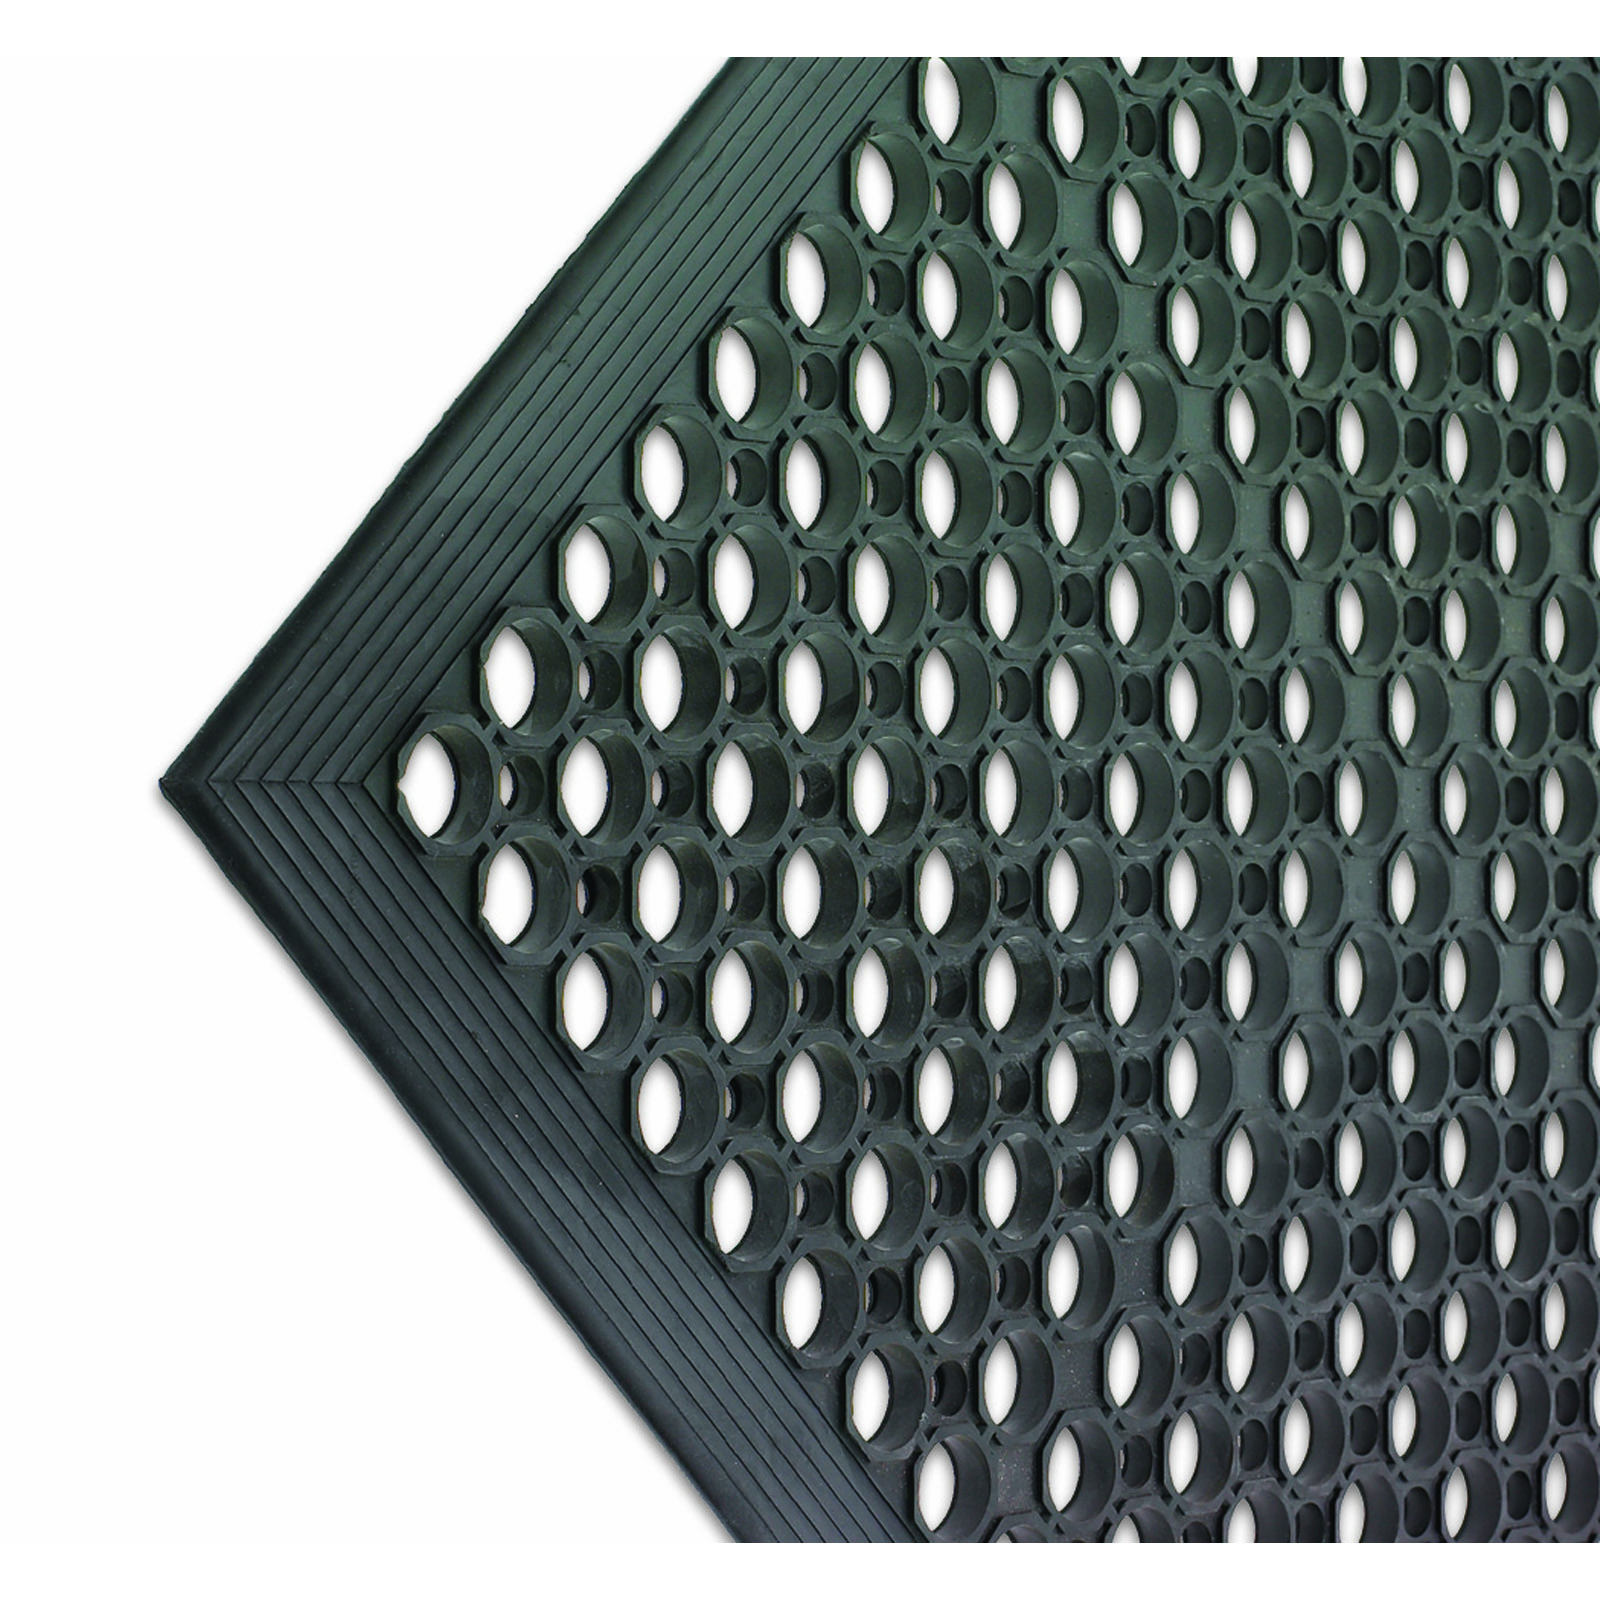 San Jamar KM1100B floor mat, anti-fatigue